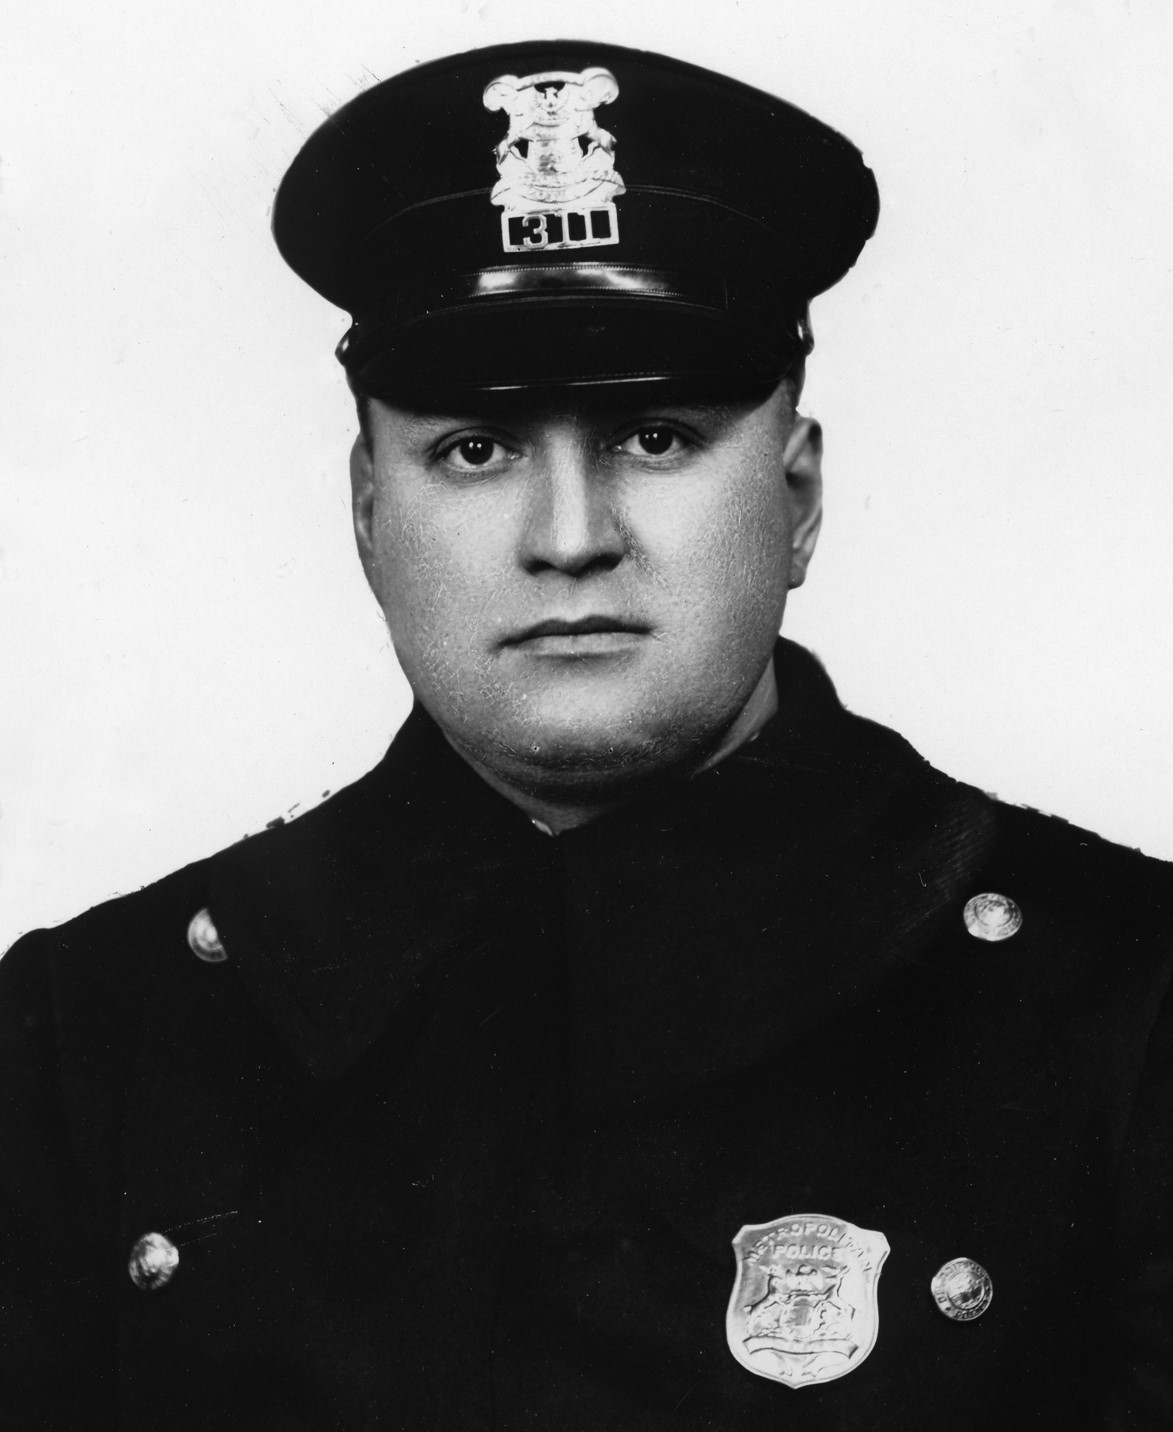 Police Officer Charles William Sieger | Detroit Police Department, Michigan